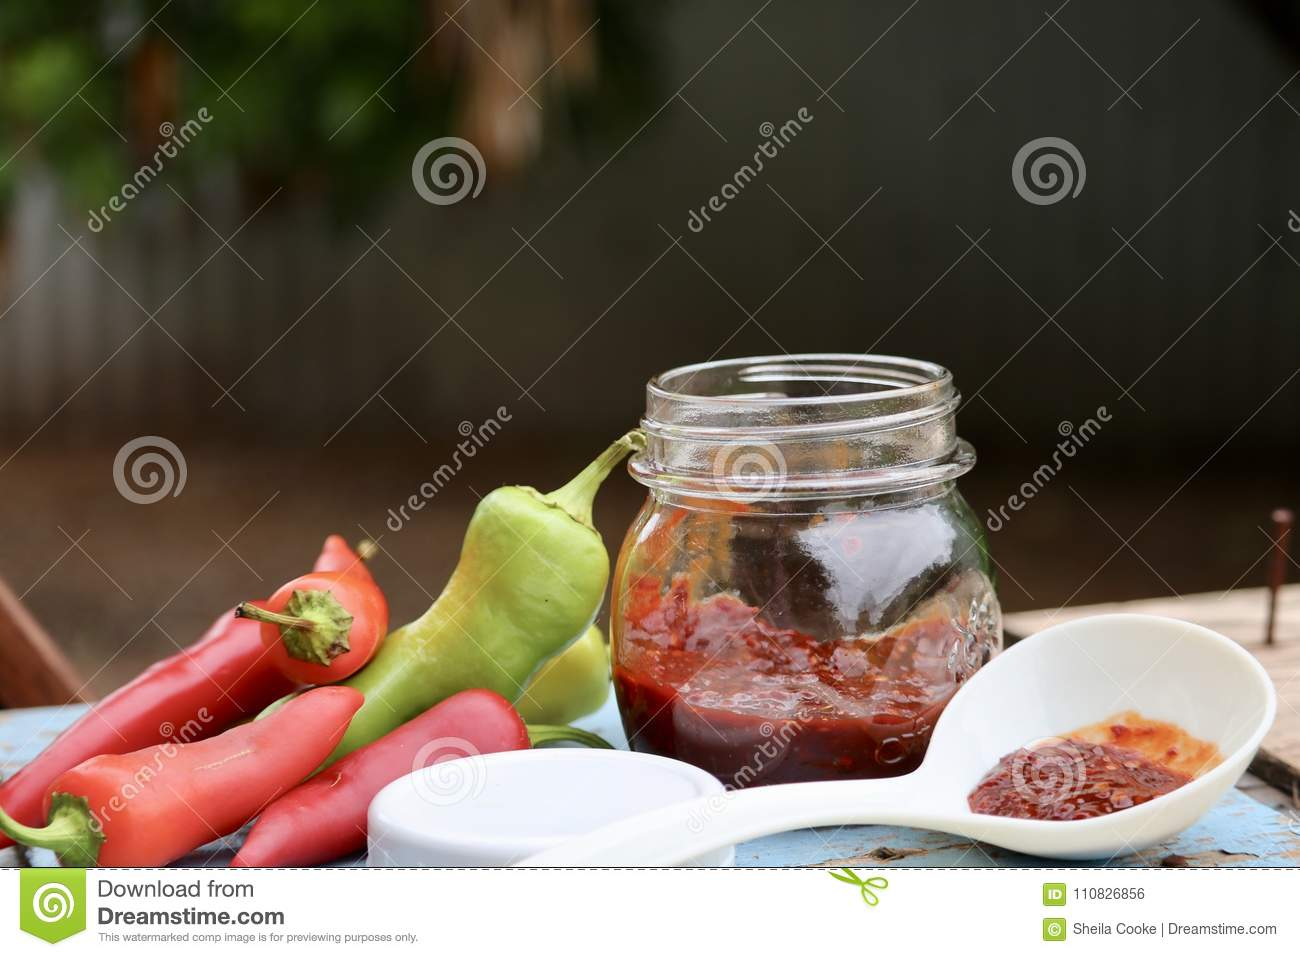 Pint glass jar of homemade red and green Chile pepper sauce